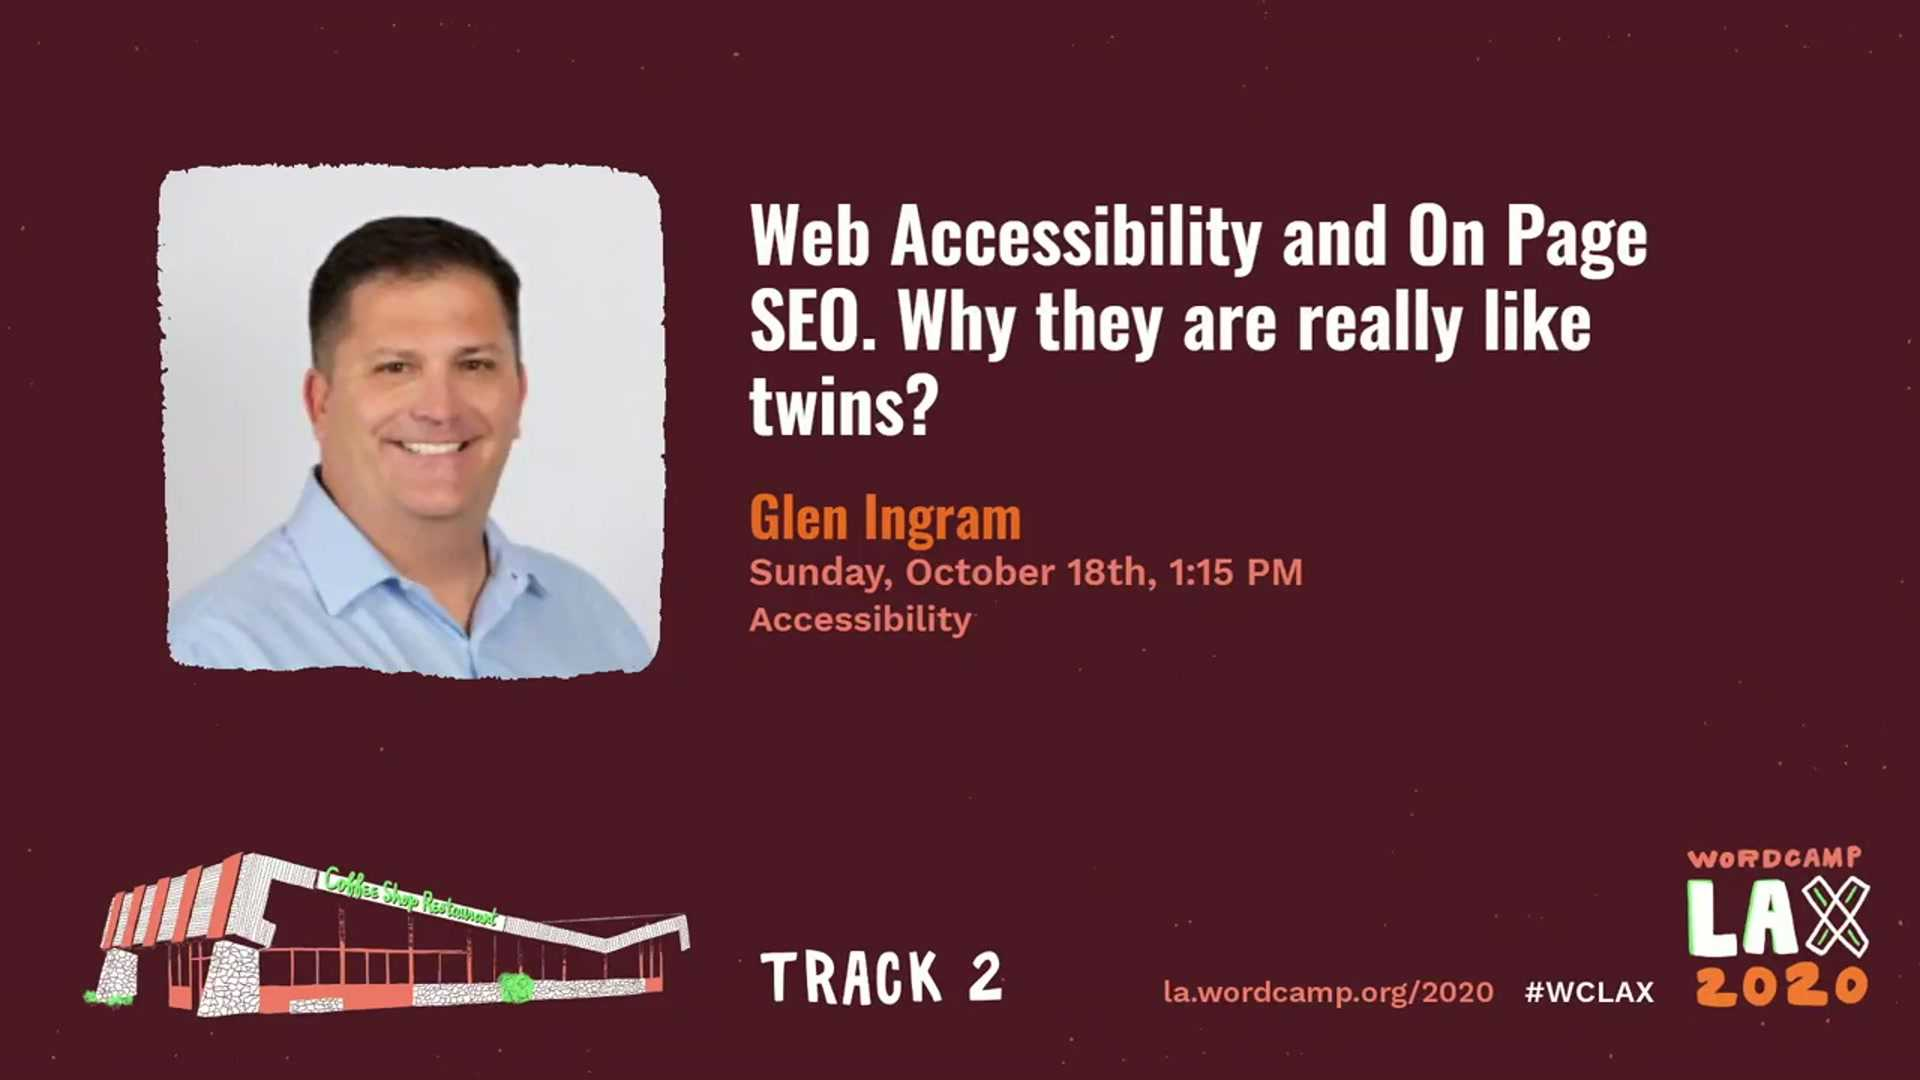 Glen Ingram: Web Accessibility and On-Page SEO: Why They Are Really Like Twins